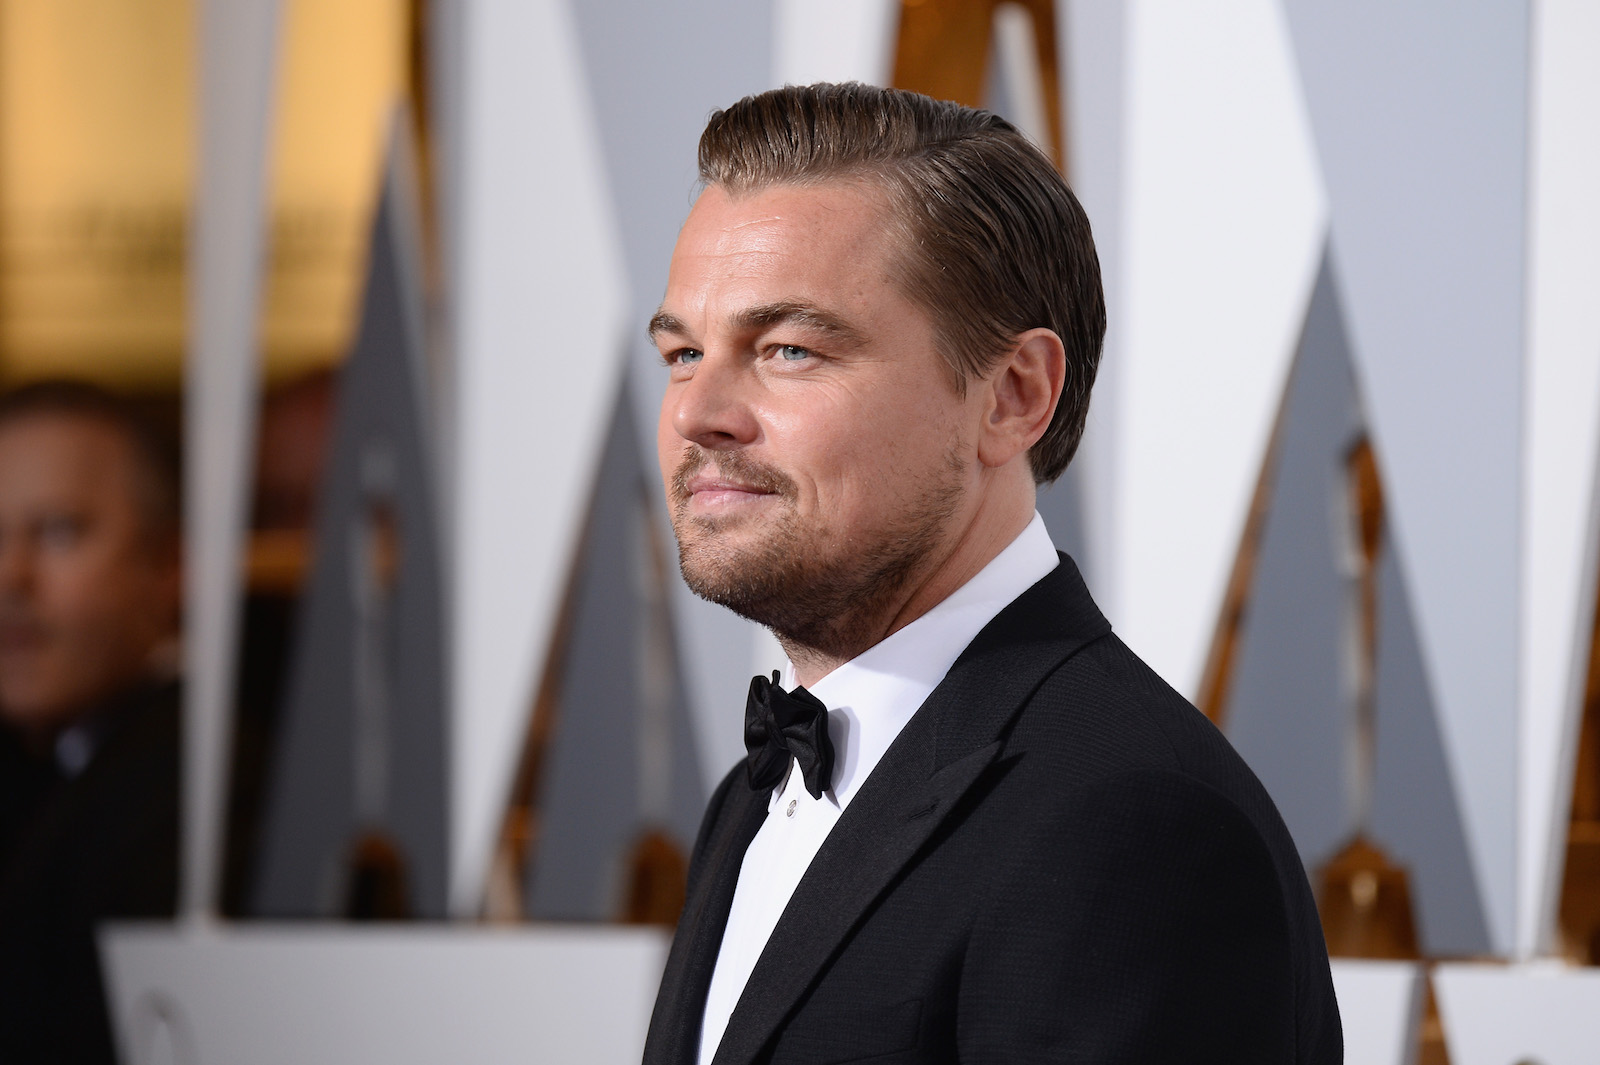 who-are-the-top-hollywood-men-to-lust-over-main-image.jpg